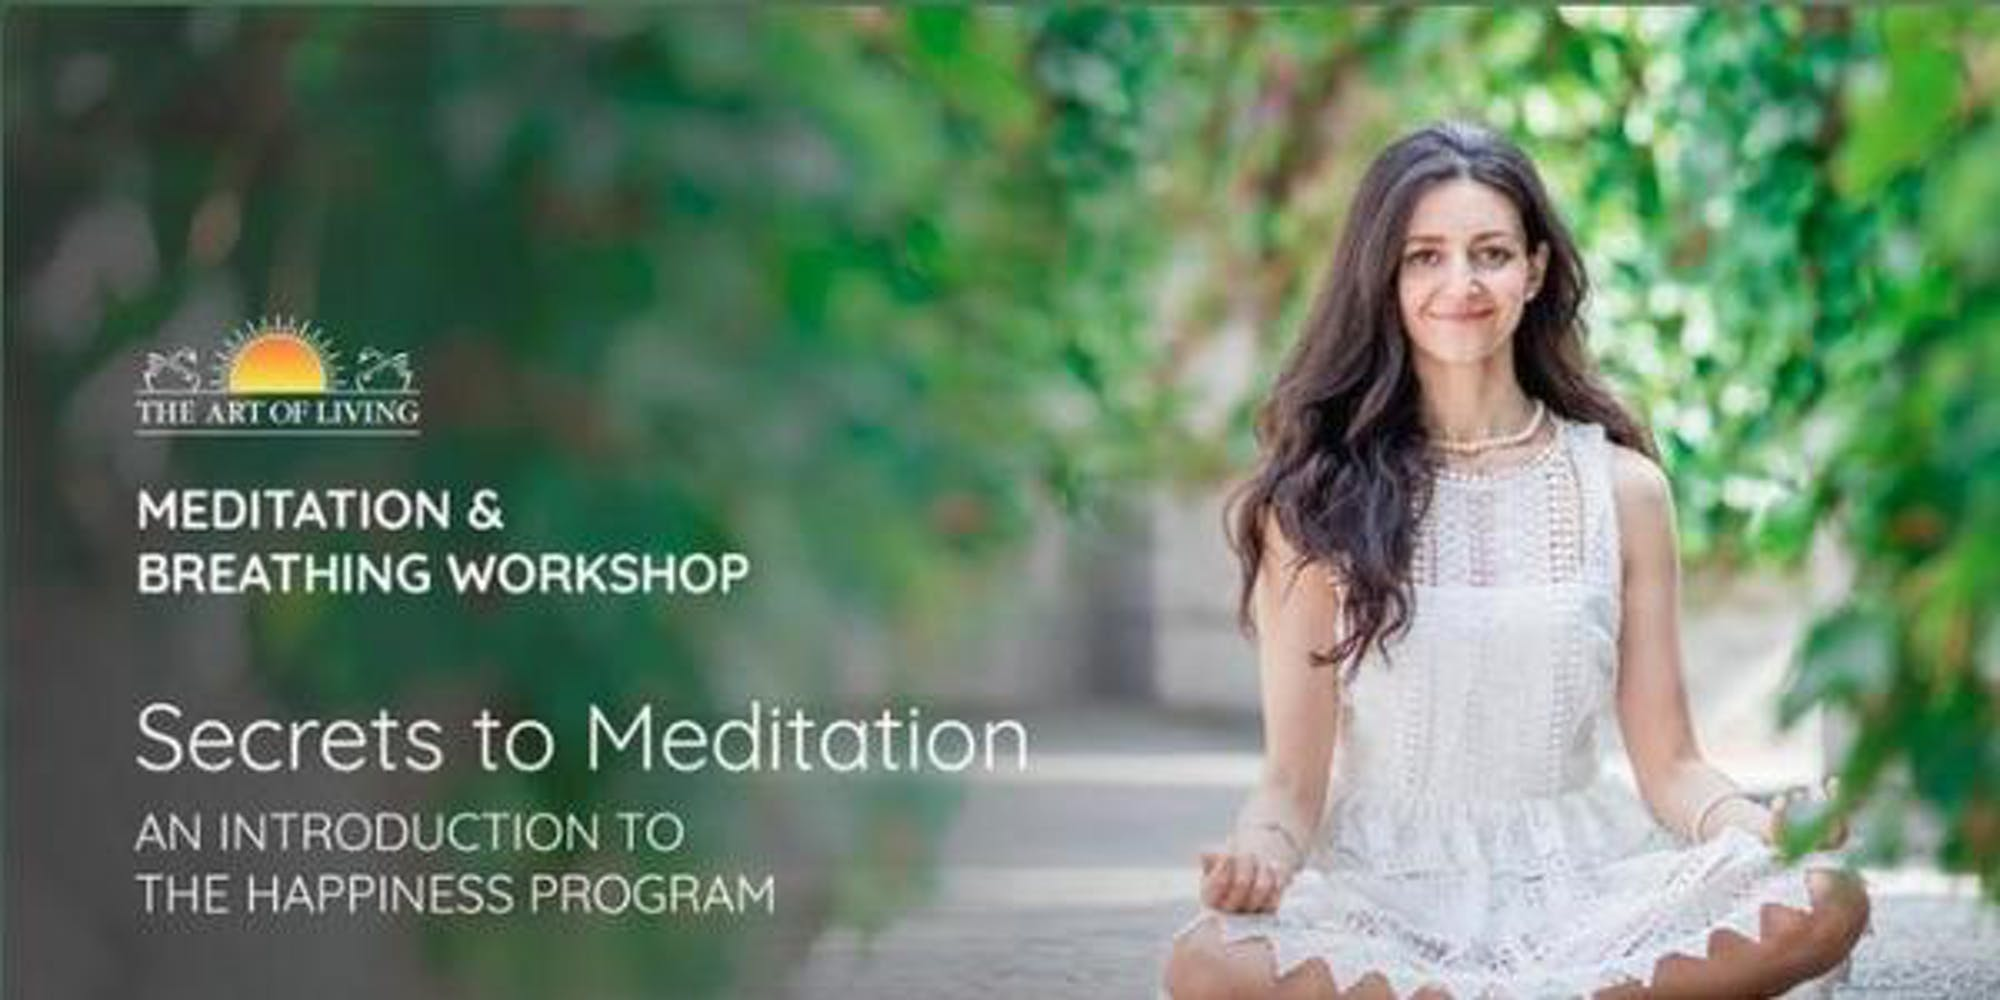 Secrets to Meditation - An Introduction to The Happiness Program